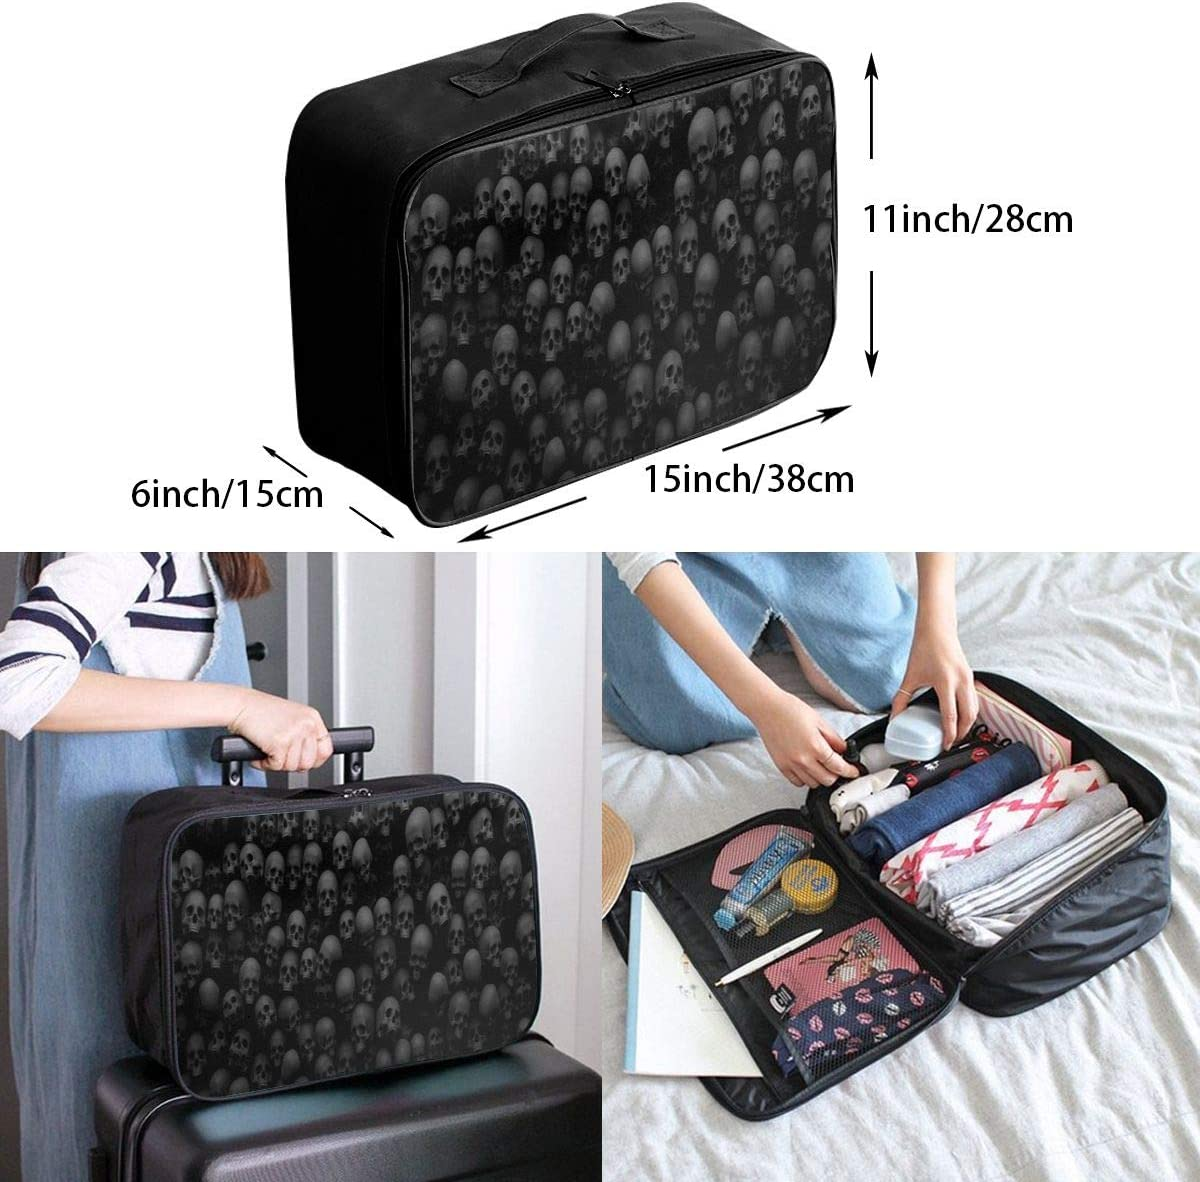 Black Skull Head Travel Duffel Bag Waterproof Fashion Lightweight Large Capacity Portable Luggage Bag